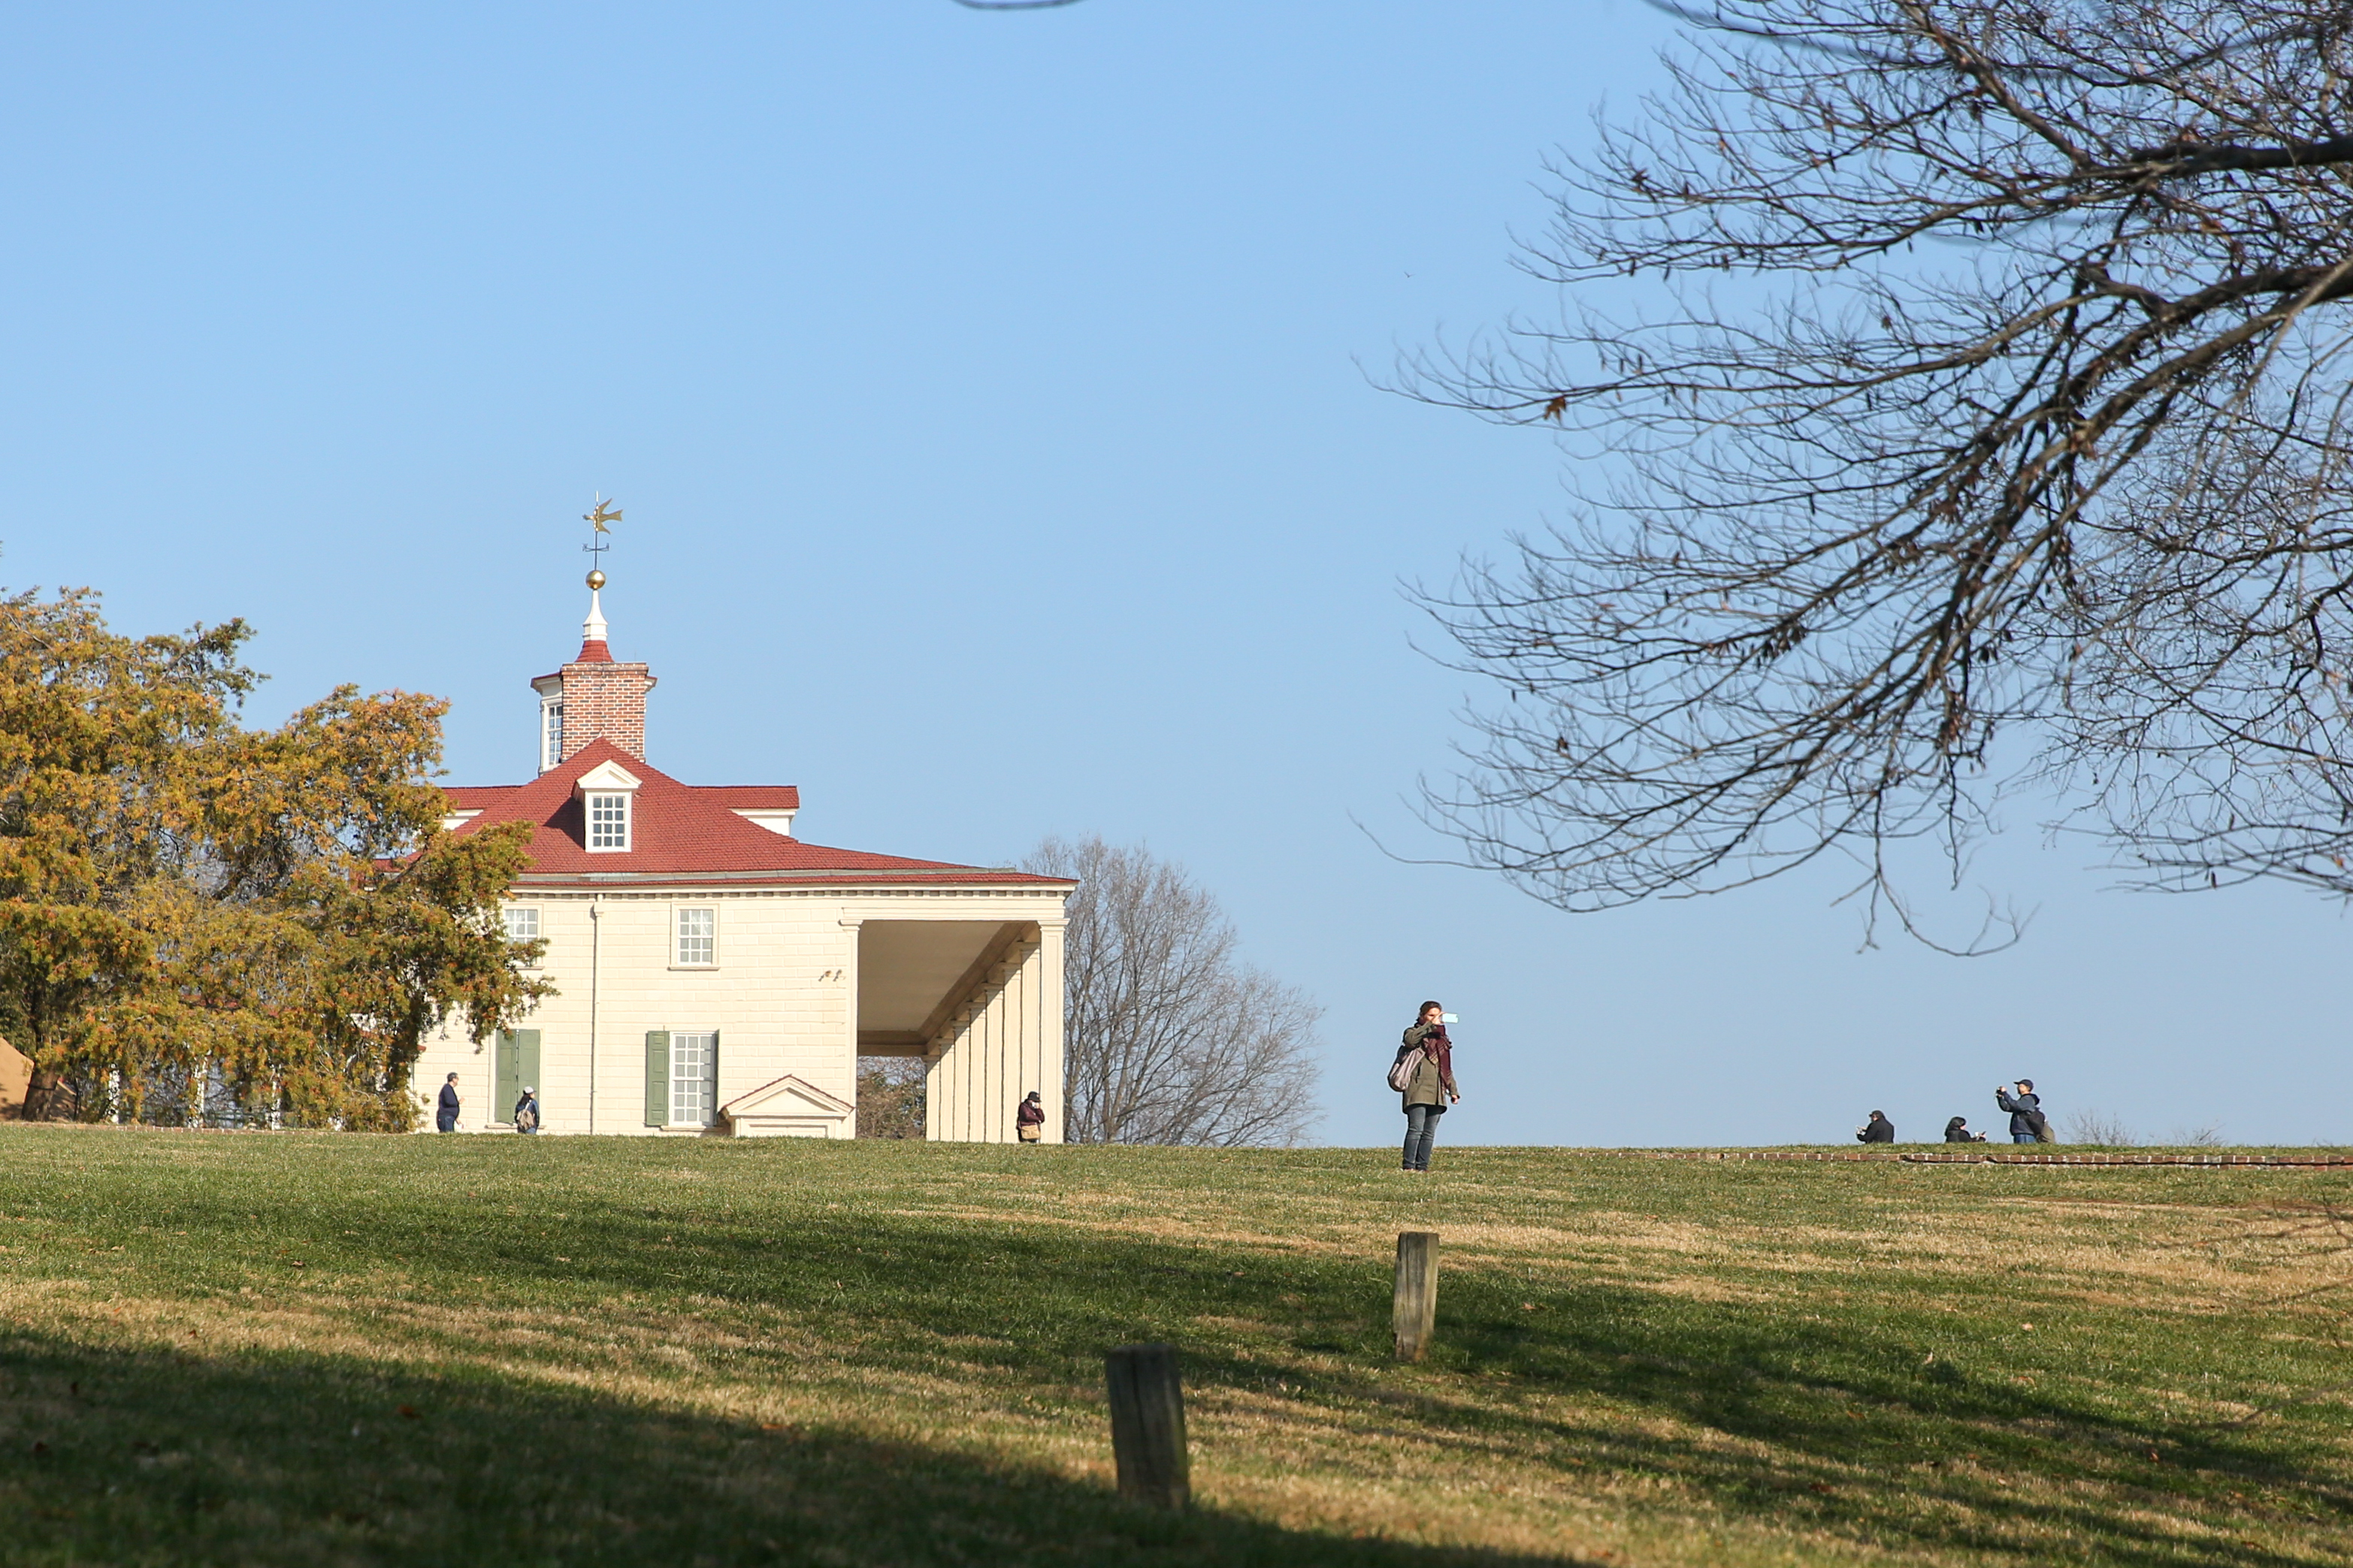 Mount Vernon features extensive grounds and an interactive museum for when you want to escape the cold. Located in Alexandria, it's a perfect way to spend a few hours and learn about history. Adult tickets are $18. (Amanda Andrade-Rhoades/DC Refined)